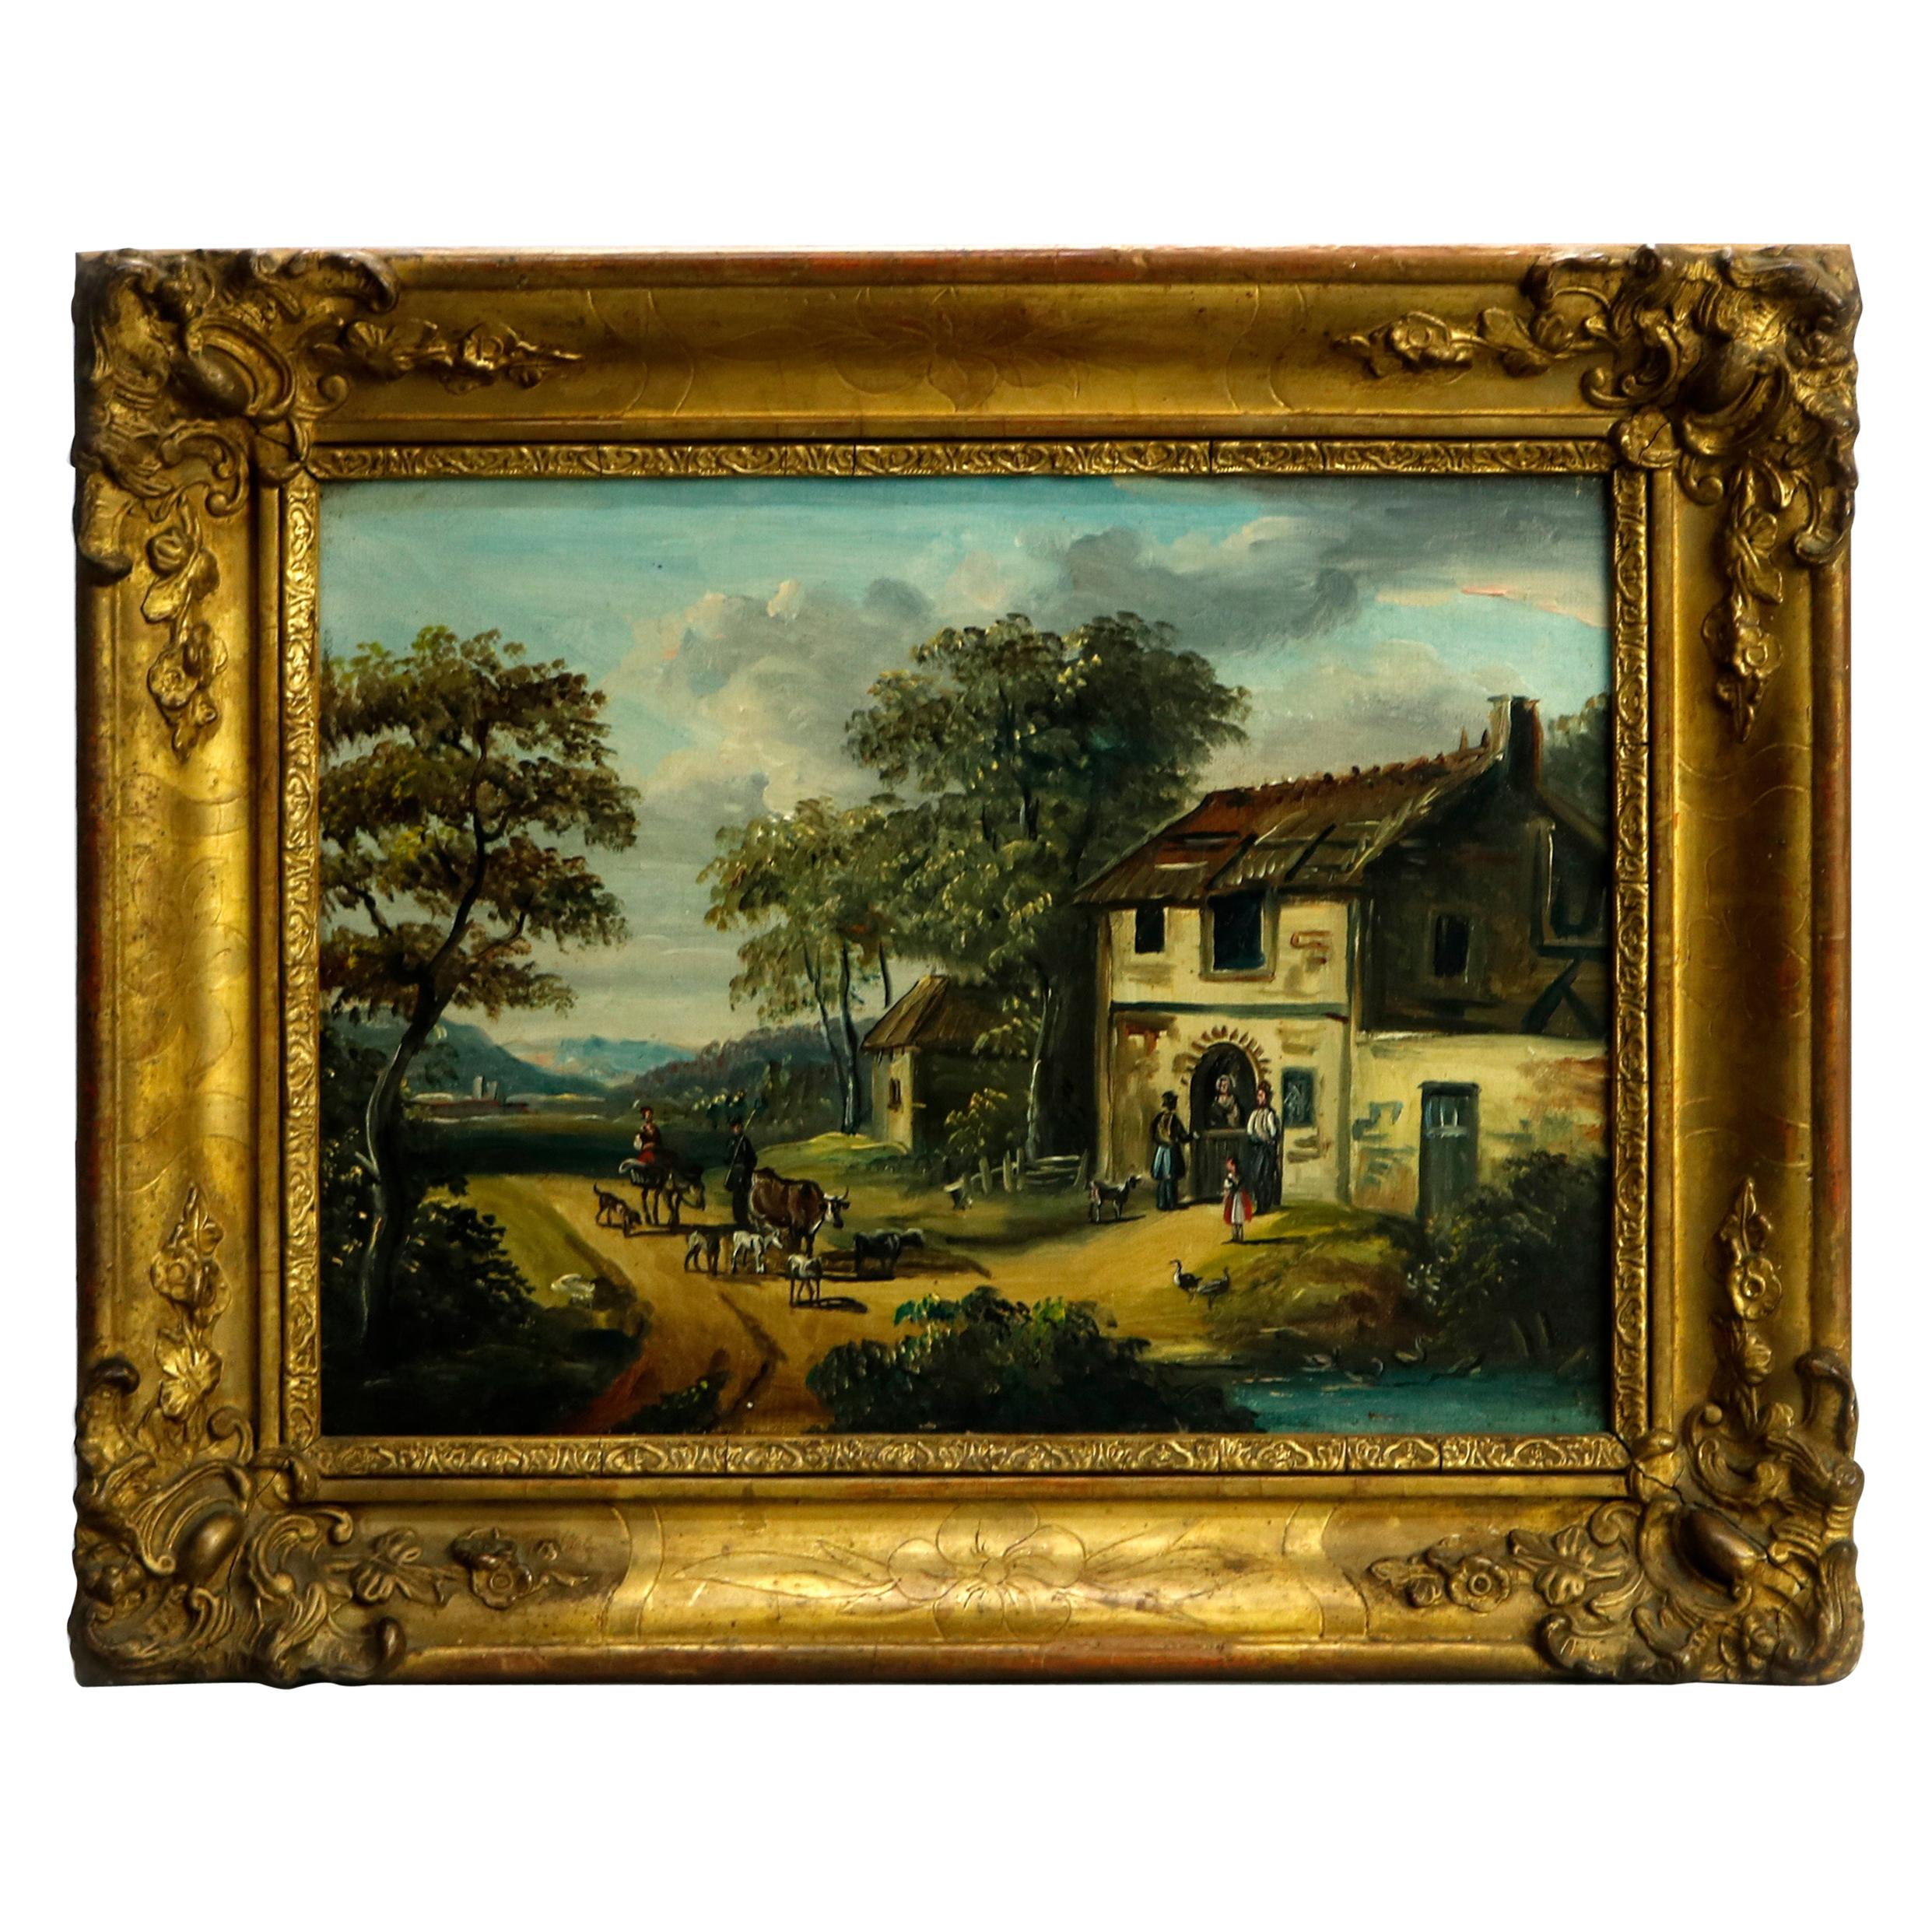 Antique Continental Oil on Canvas Painting, Village Scene in Giltwood, c1860